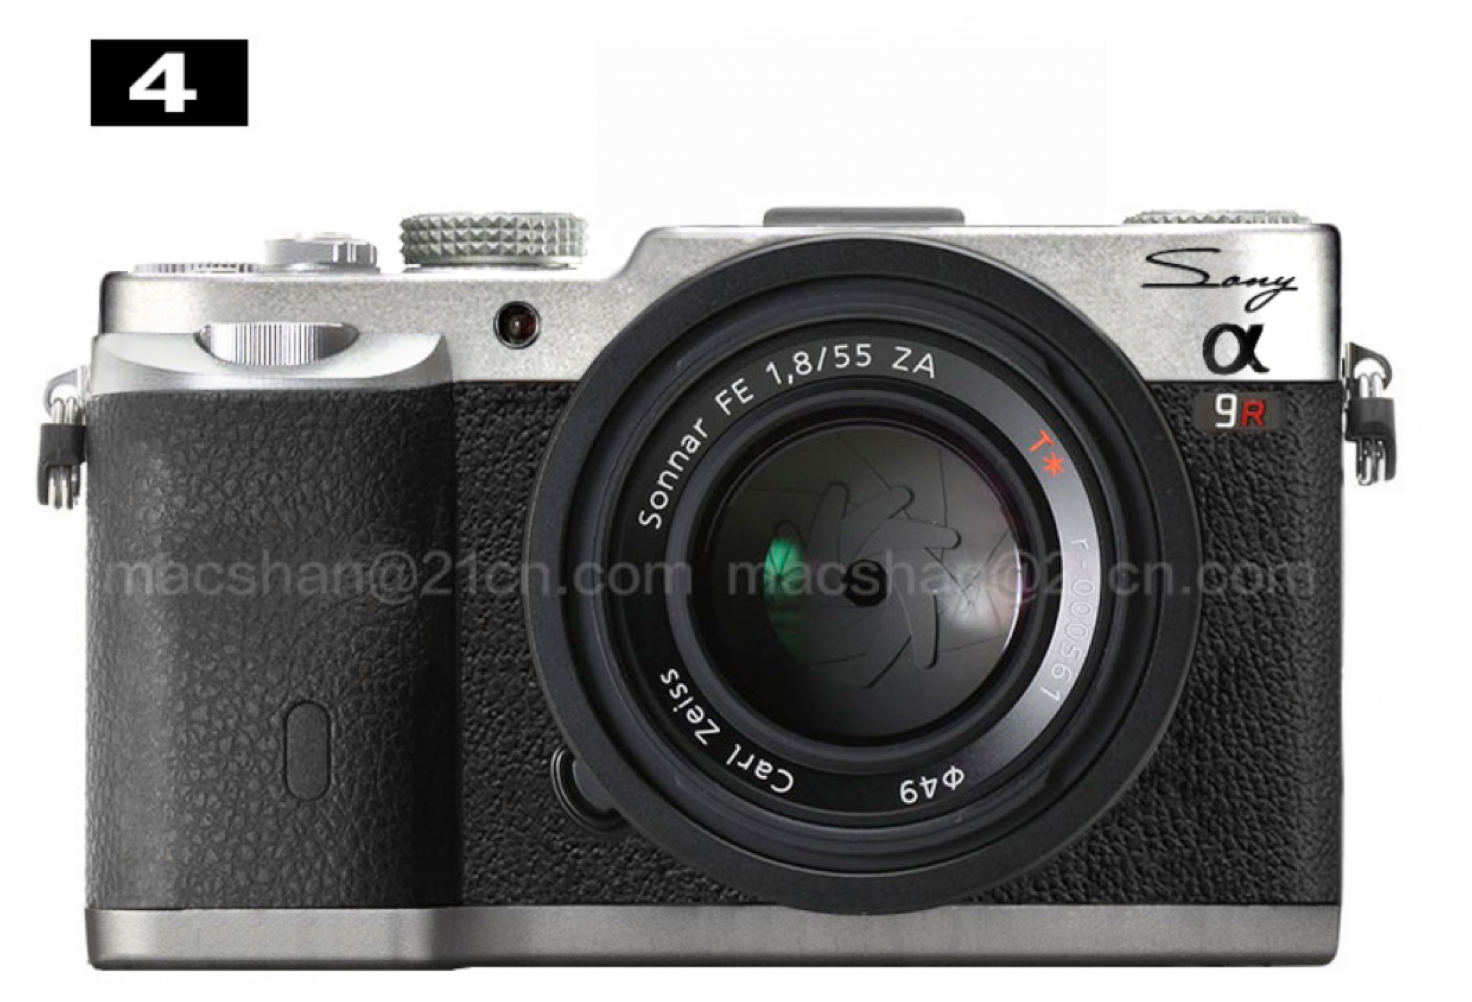 SR5) Hot! First images of the new DSC-QX10 and DSC-QX100 lens ...